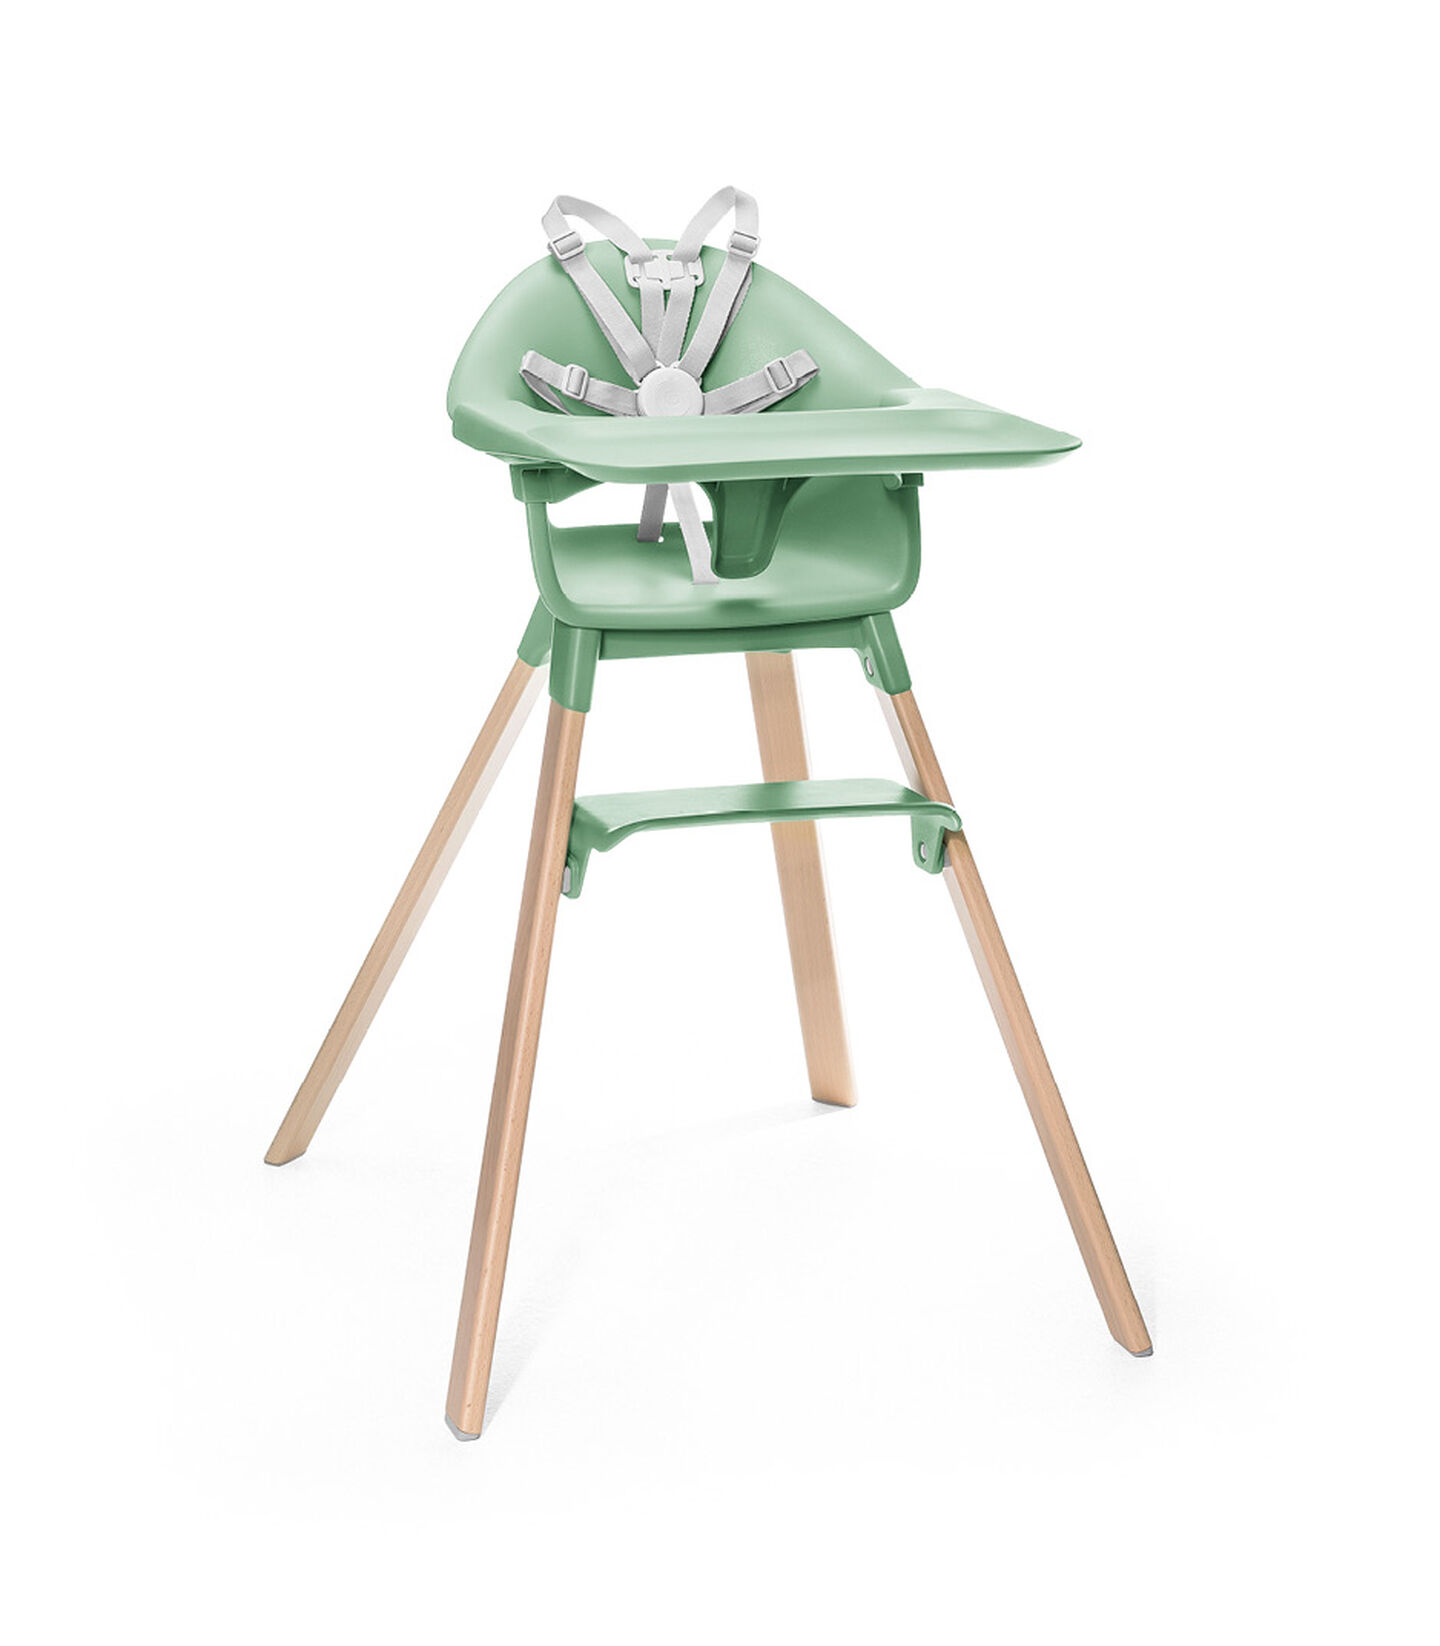 Stokke® Clikk™ High Chair Soft Green, Verde Trébol, mainview view 2